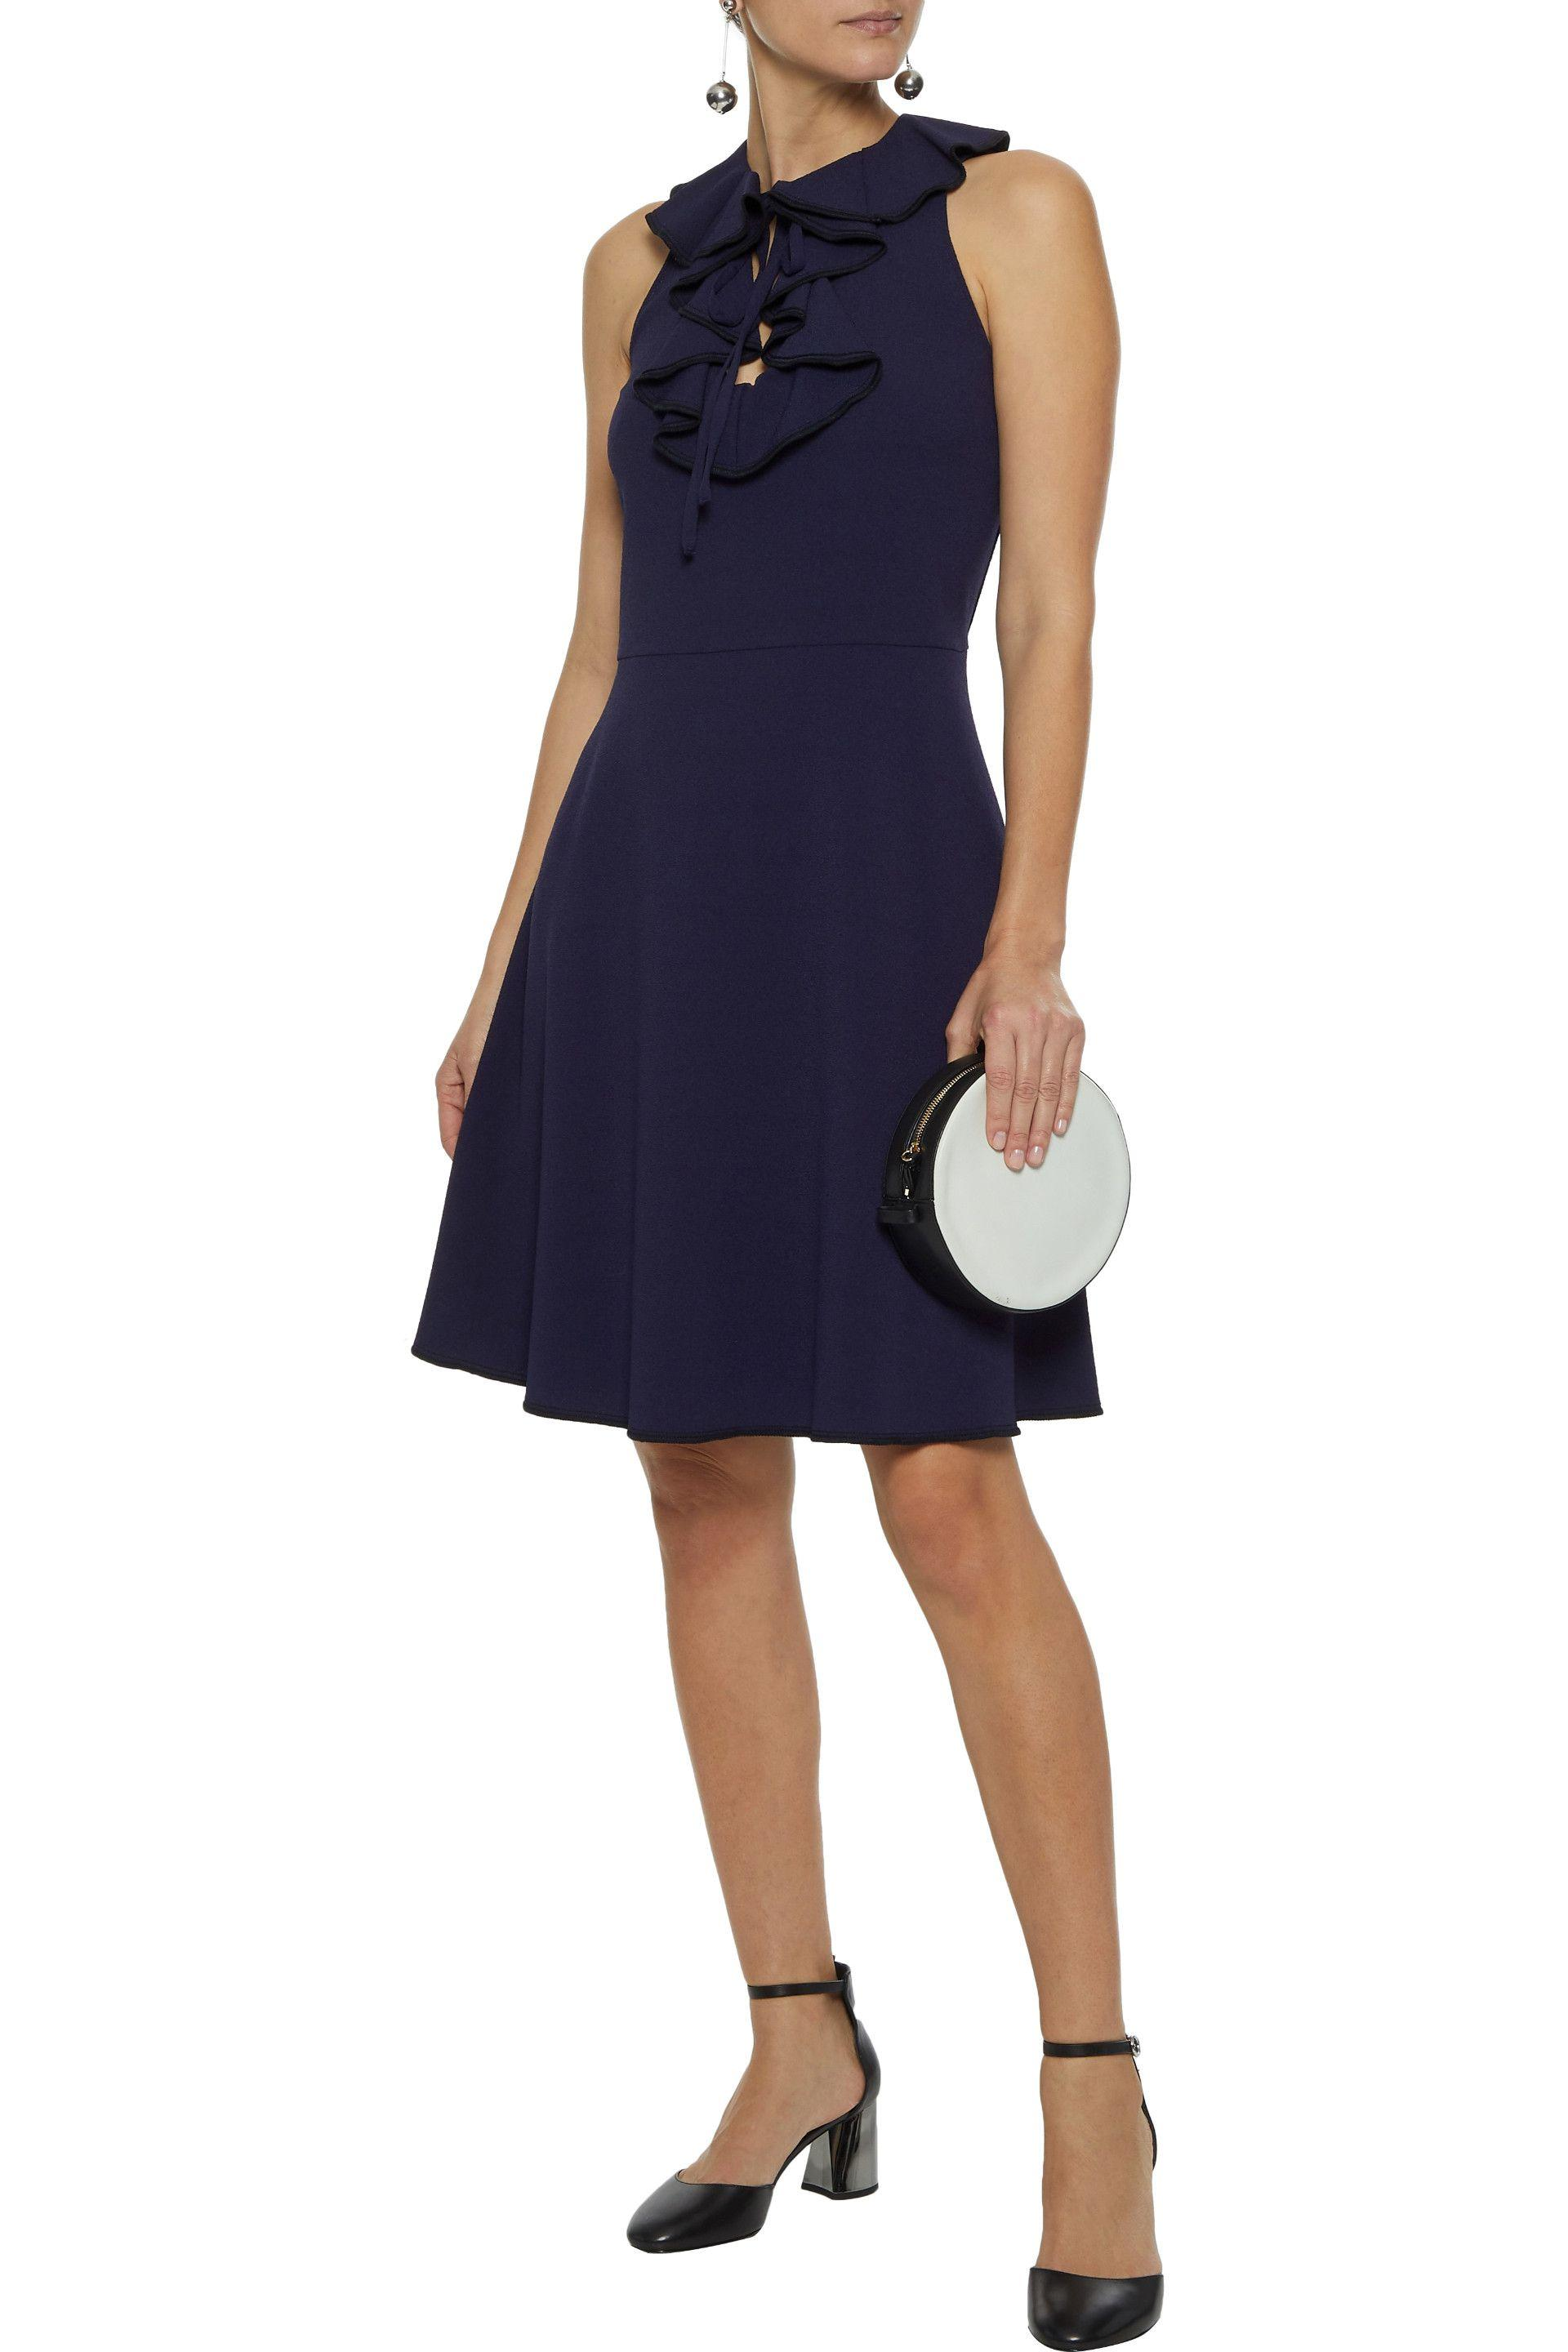 e93047e267 Lyst - See By Chloé See By Chloé Woman Ruffle-trimmed Crepe Dress ...